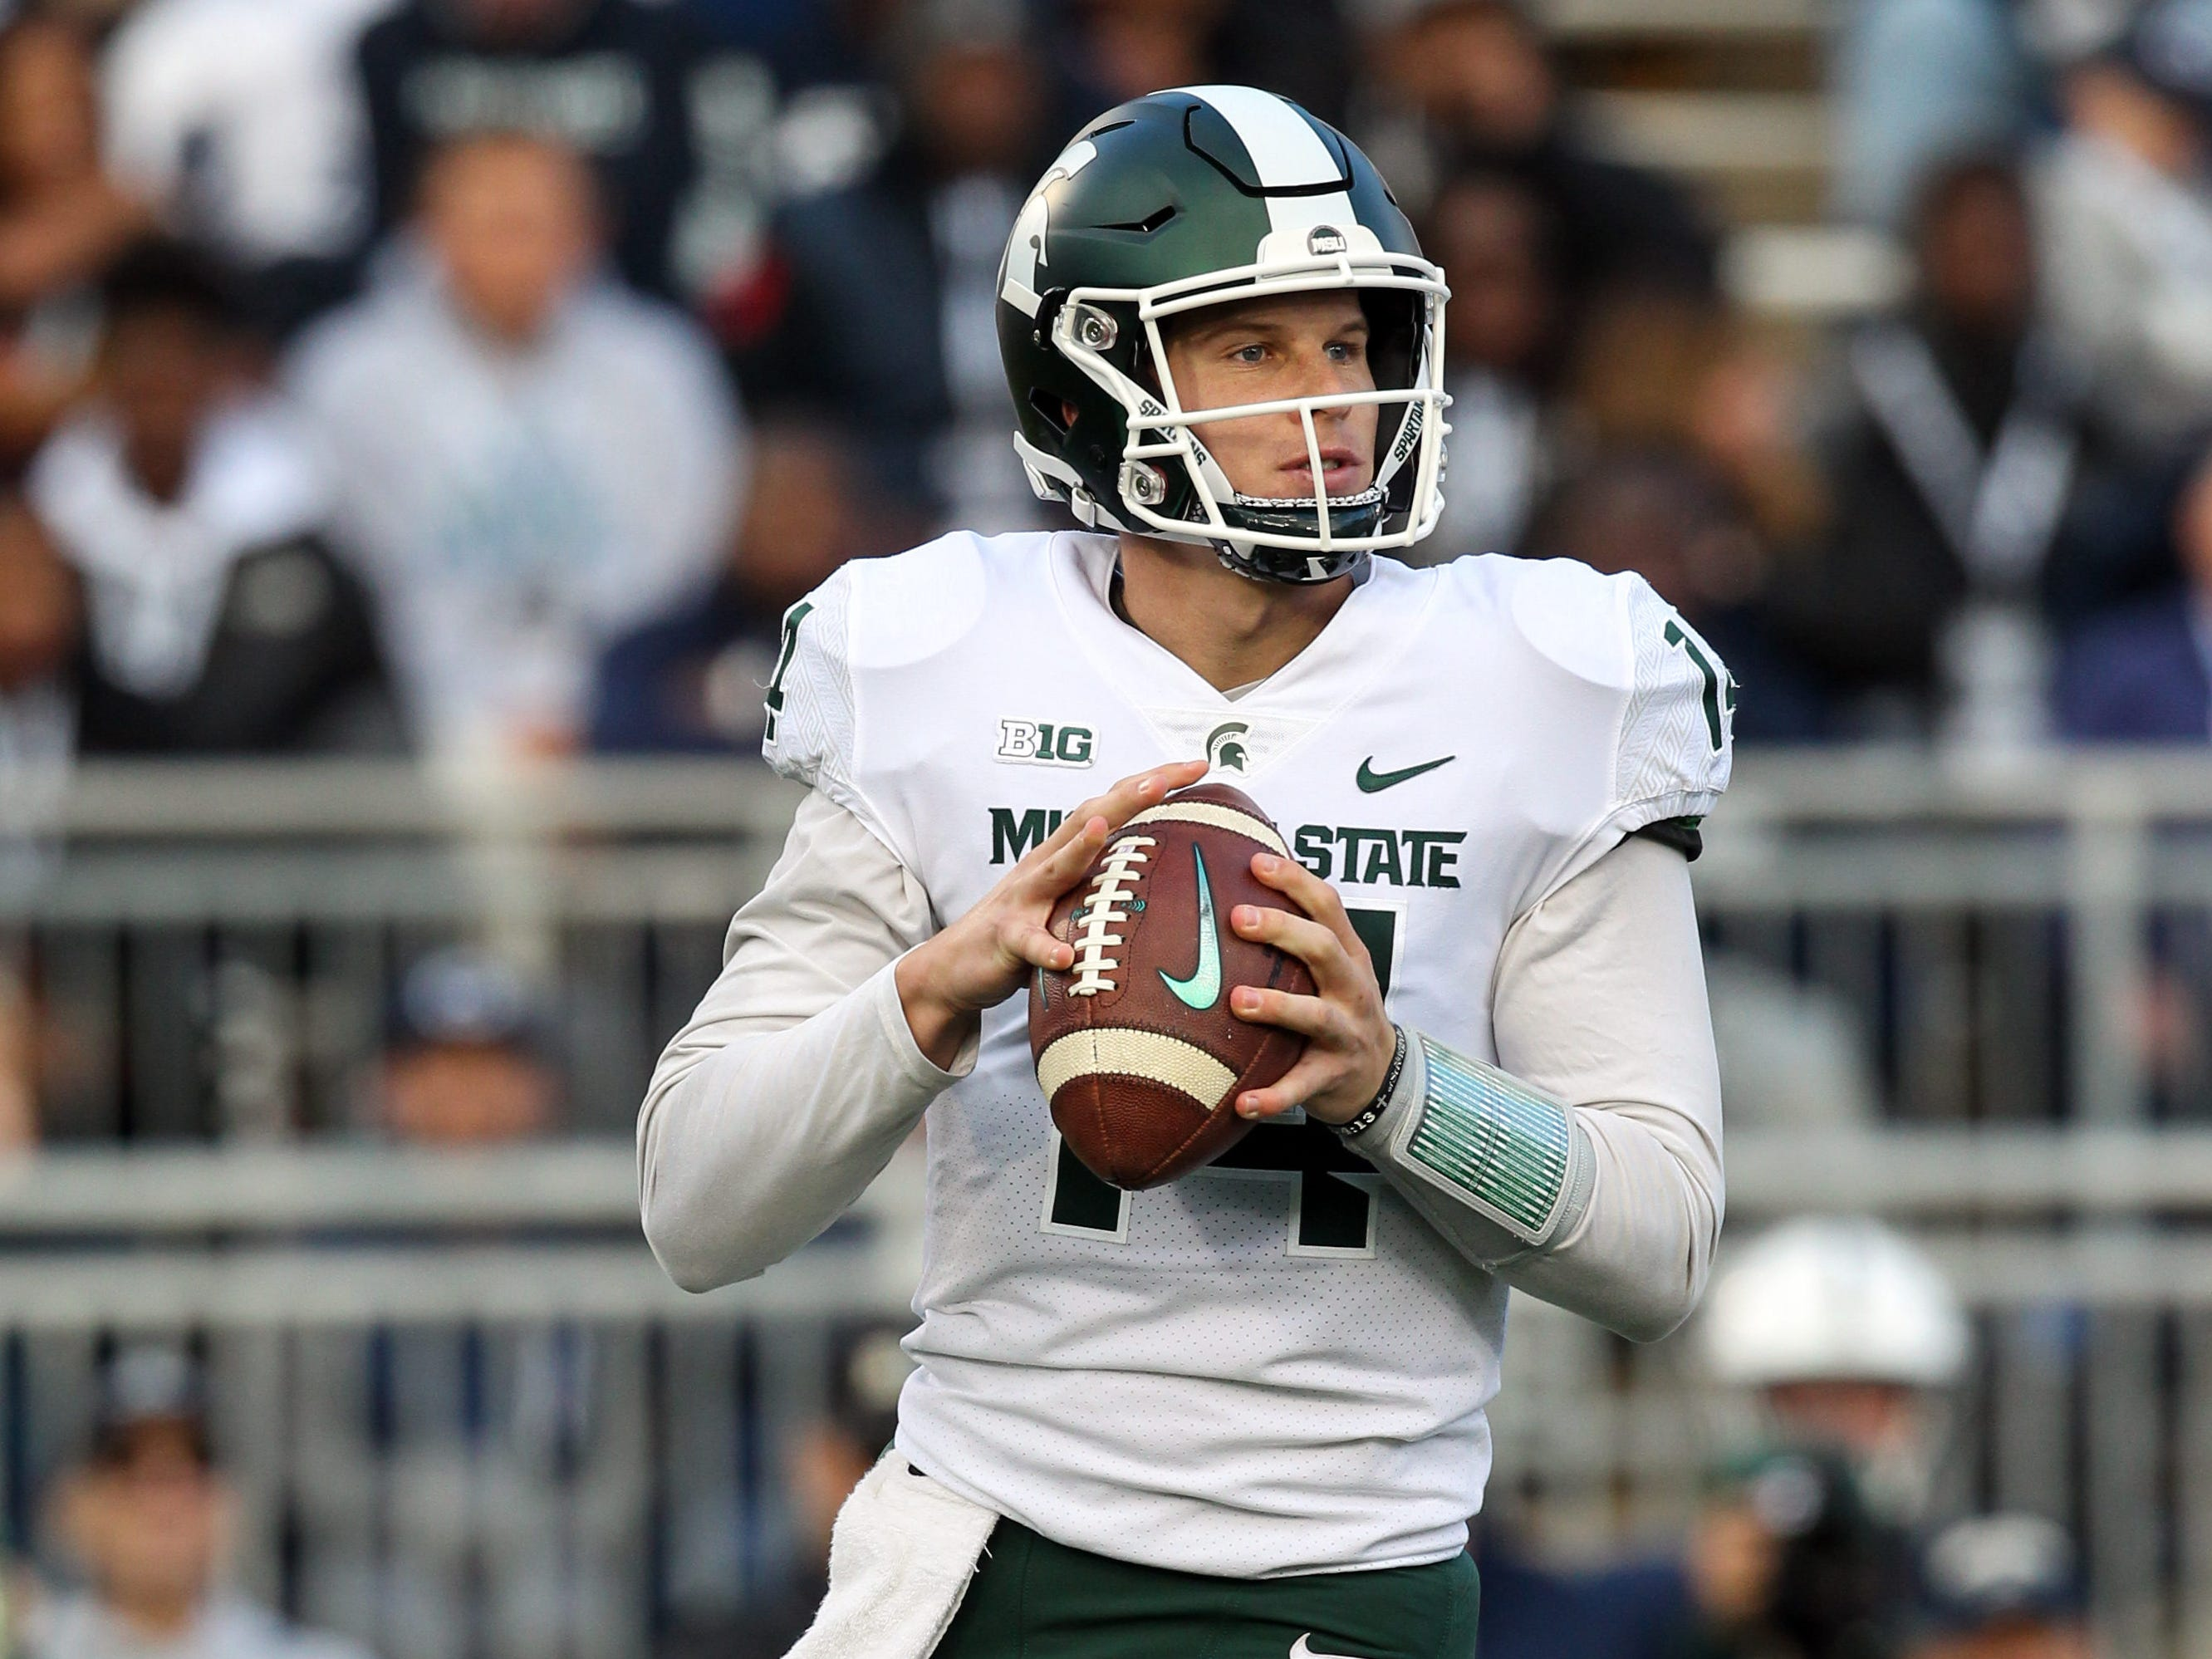 Michigan State Spartans quarterback Brian Lewerke (14) drops back in the pocket during the first quarter against the Penn State Nittany Lions at Beaver Stadium.